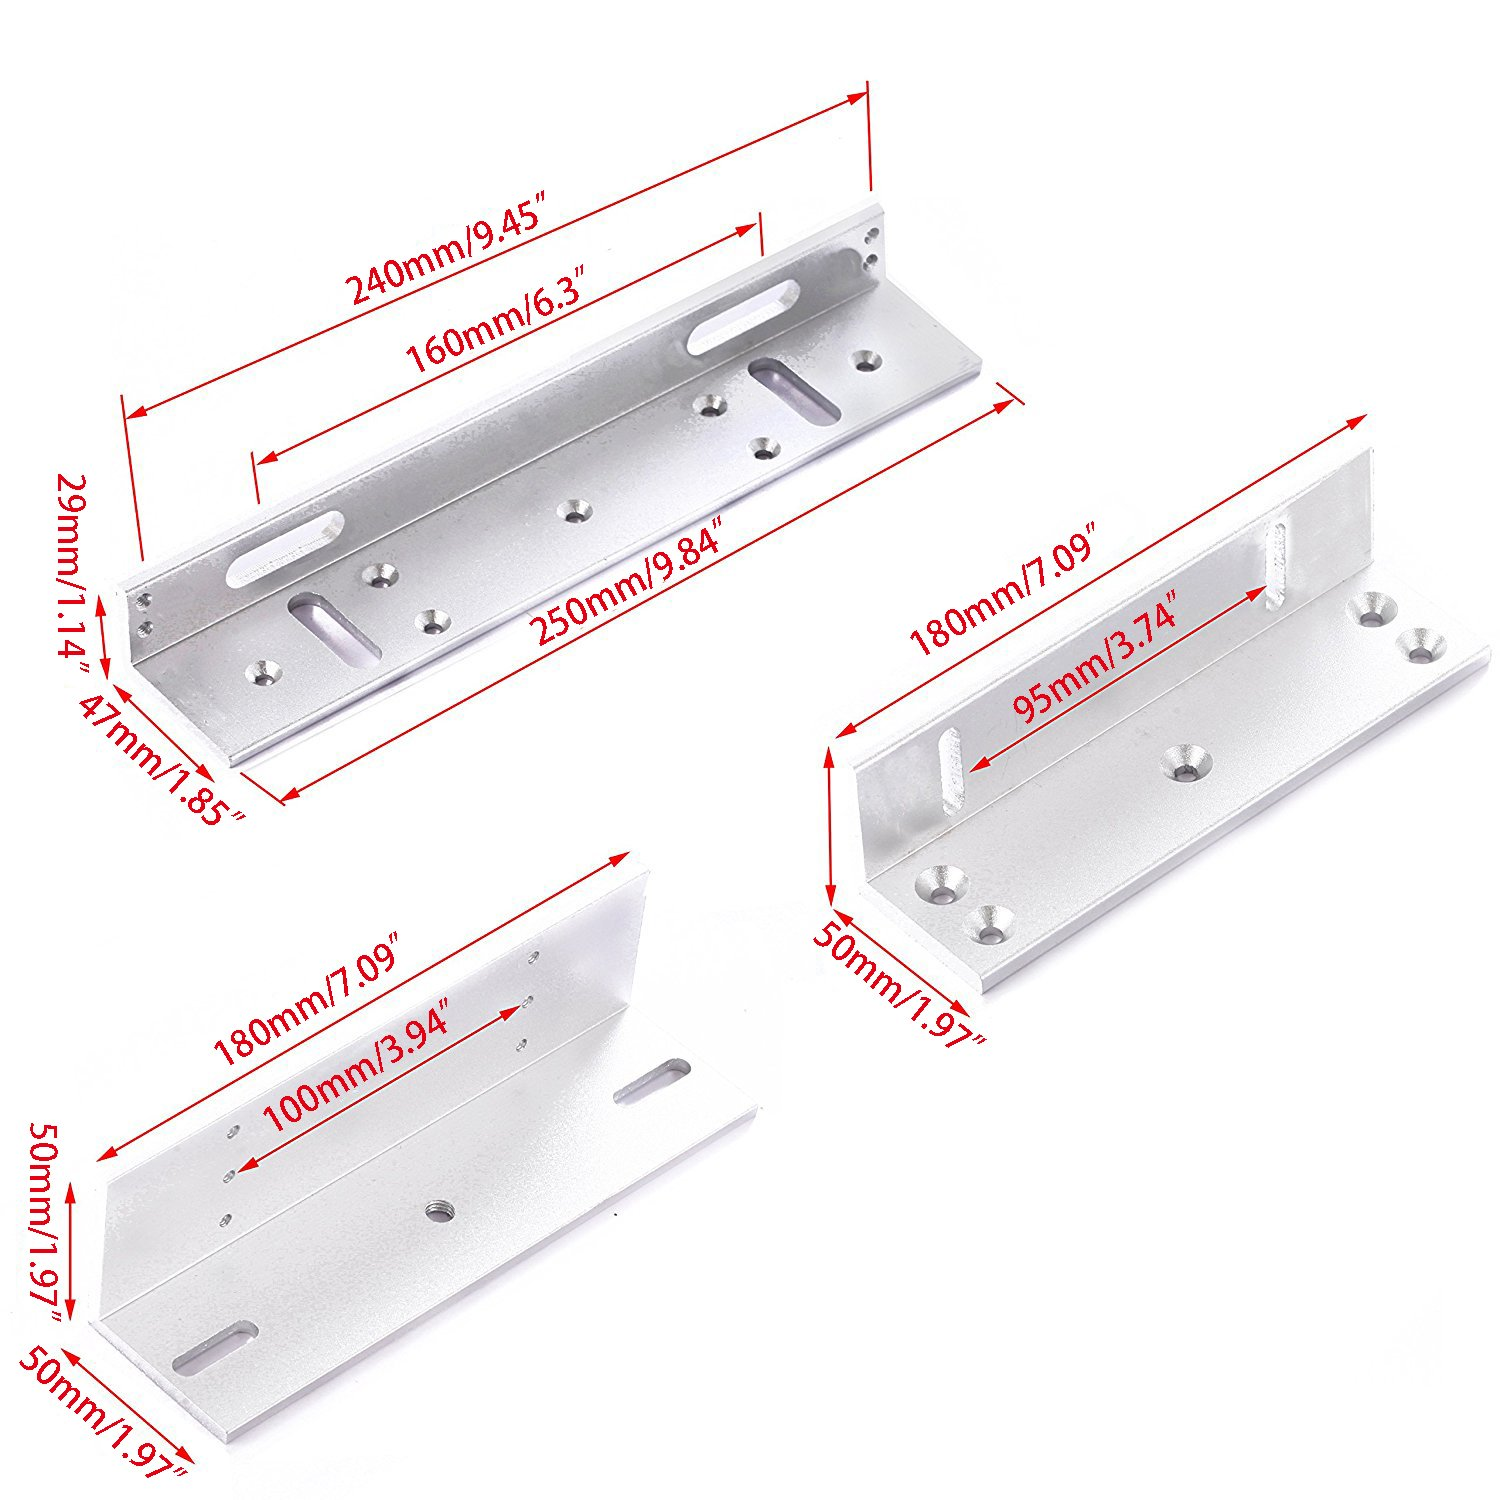 UHPPOTE ZL Holder Stand Bracket Clamp Support For 280KG 600lbs Force Holding Electric Magnetic Lock Inward Door by UHPPOTE (Image #3)